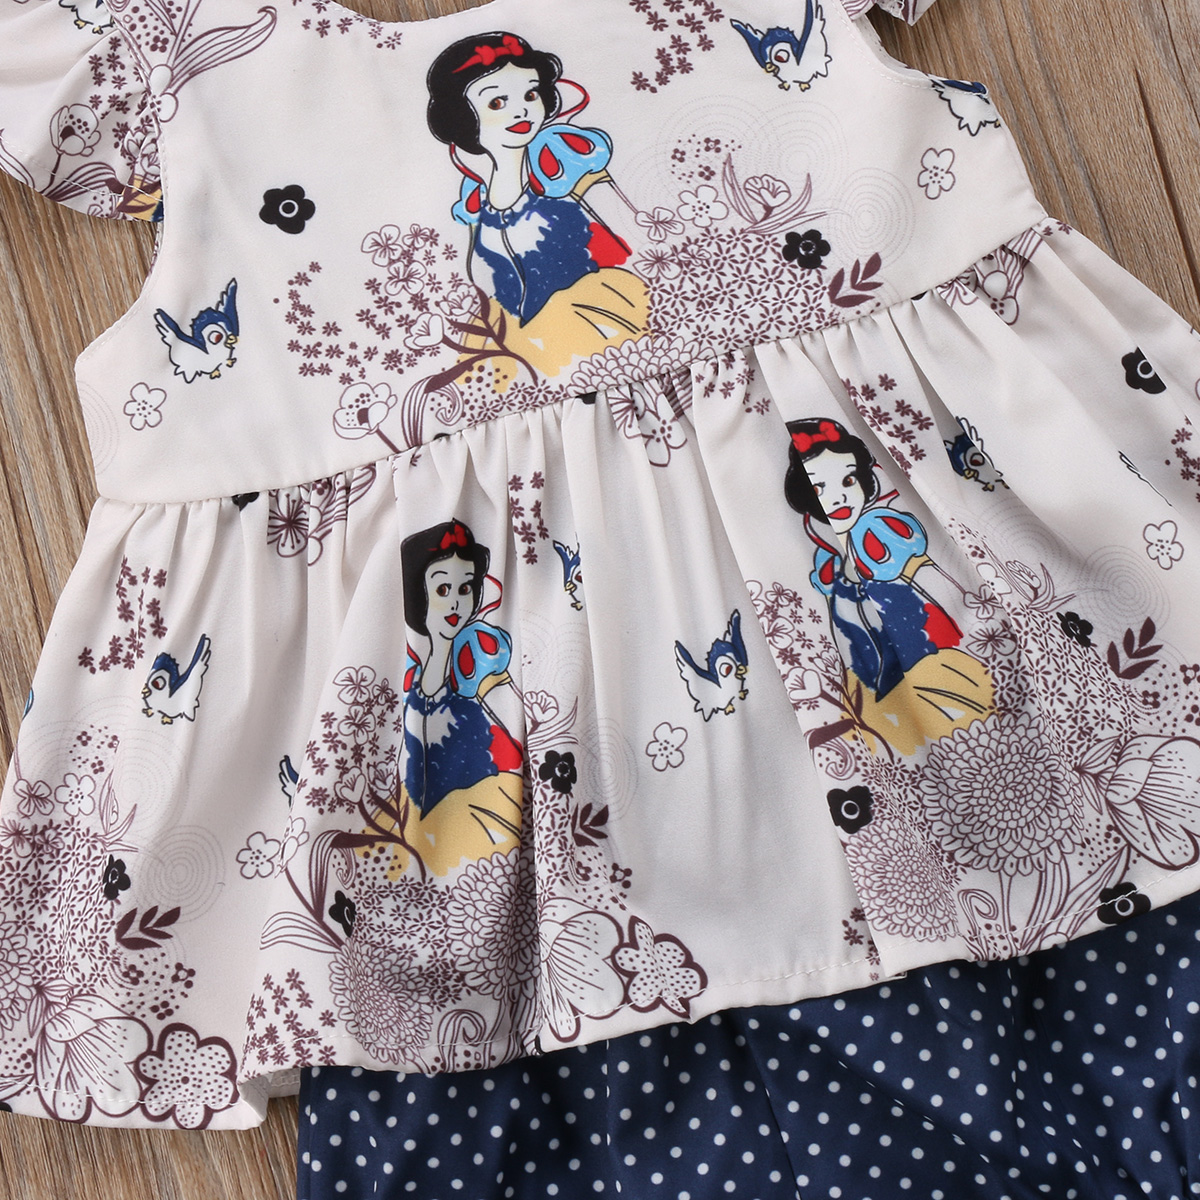 Print Cartoon Character Snow Newborn Clothes Baby Girl 2pcs Set Summer Sleeveless T Shirt Dress Dot Shorts Outfits in Clothing Sets from Mother Kids